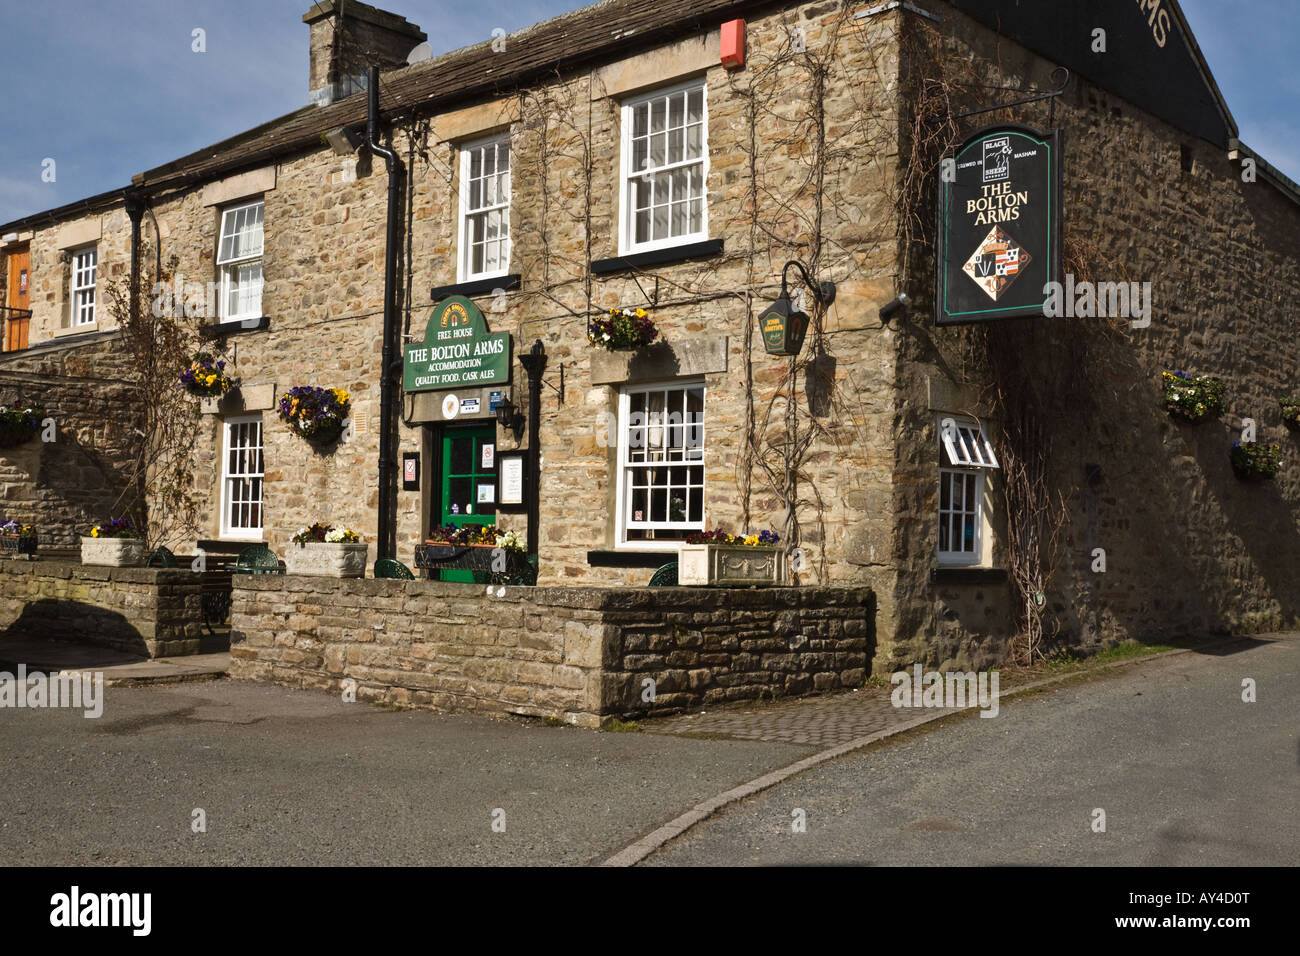 The Bolton Arms, village pub at Redmire, Wensleydale - Stock Image